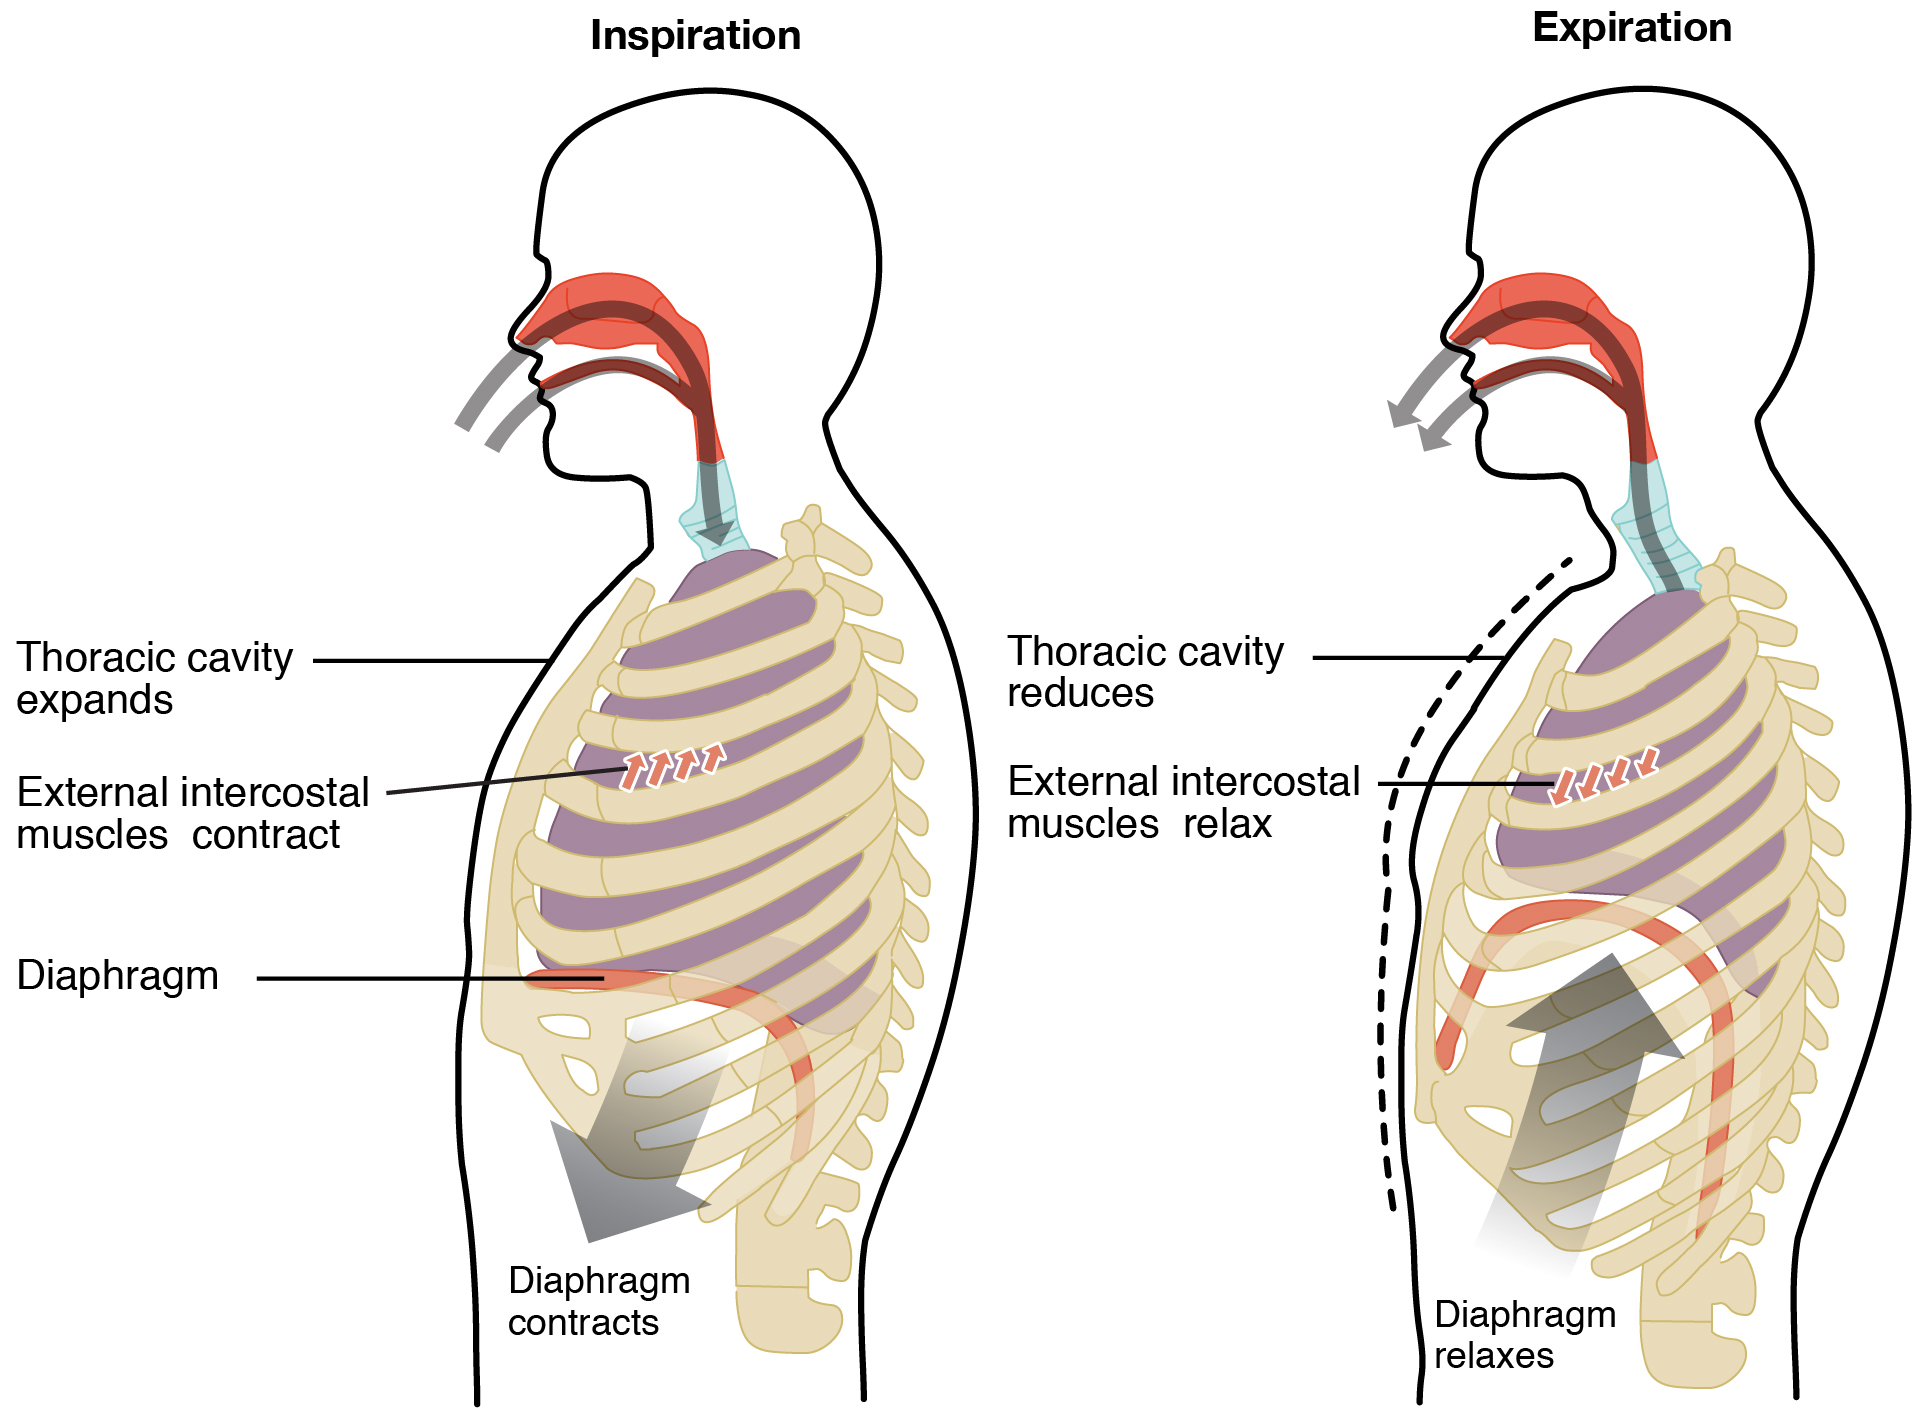 The left panel of this image shows a person inhaling air and the location of the chest muscles. The right panel shows the person exhaling air and the contraction of the thoracic cavity.